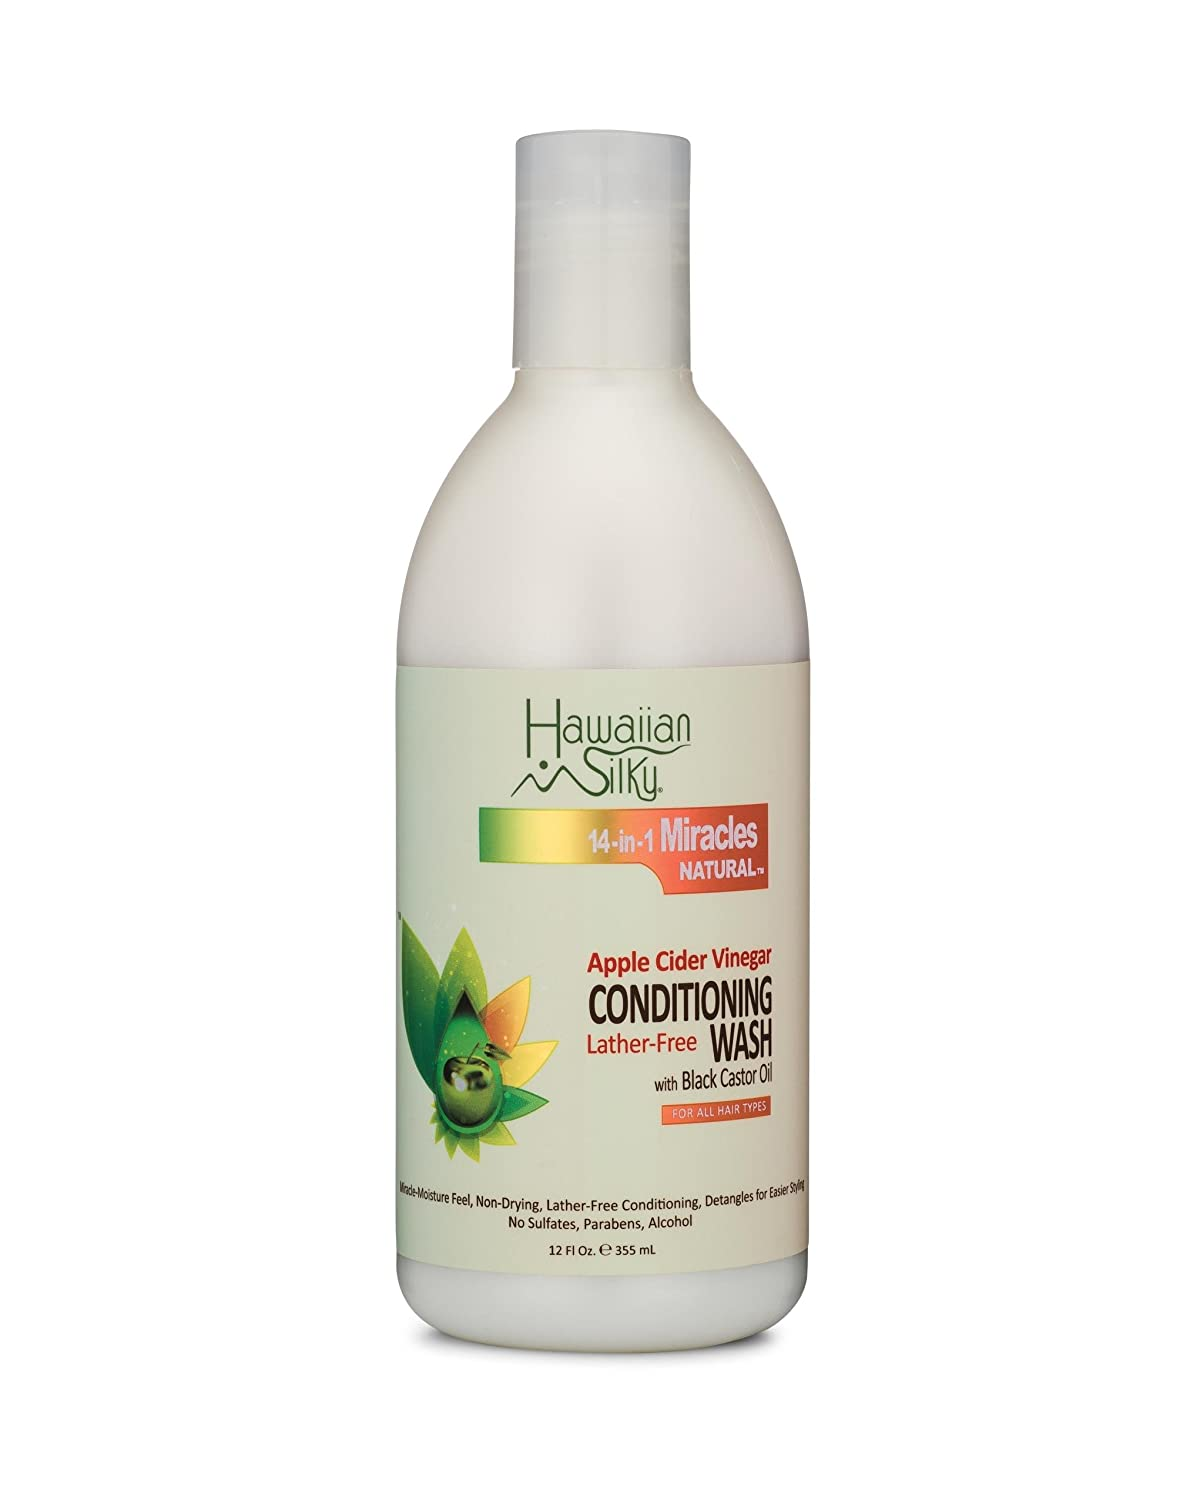 Hawaiian Silky Apple Cider Vinegar Conditioning Wash, 12 fl oz - Lather-Free , with Black Castor Oil Extract, Cleansing Hair Moisturizer Treatment - Good on Men, Women & Kids